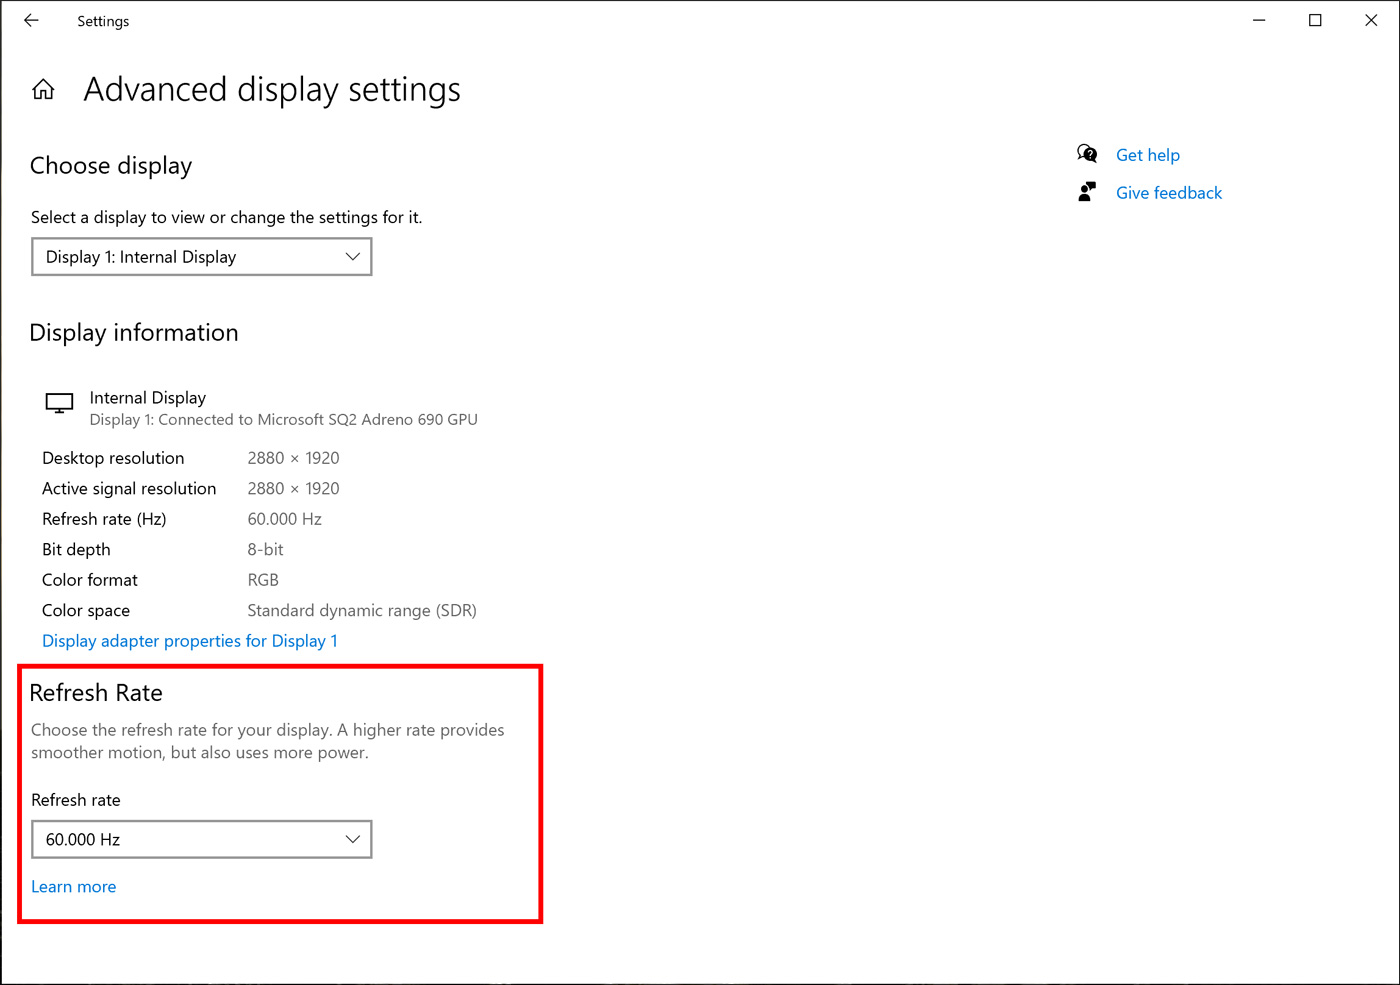 New WIndows 10 refresh rate settings